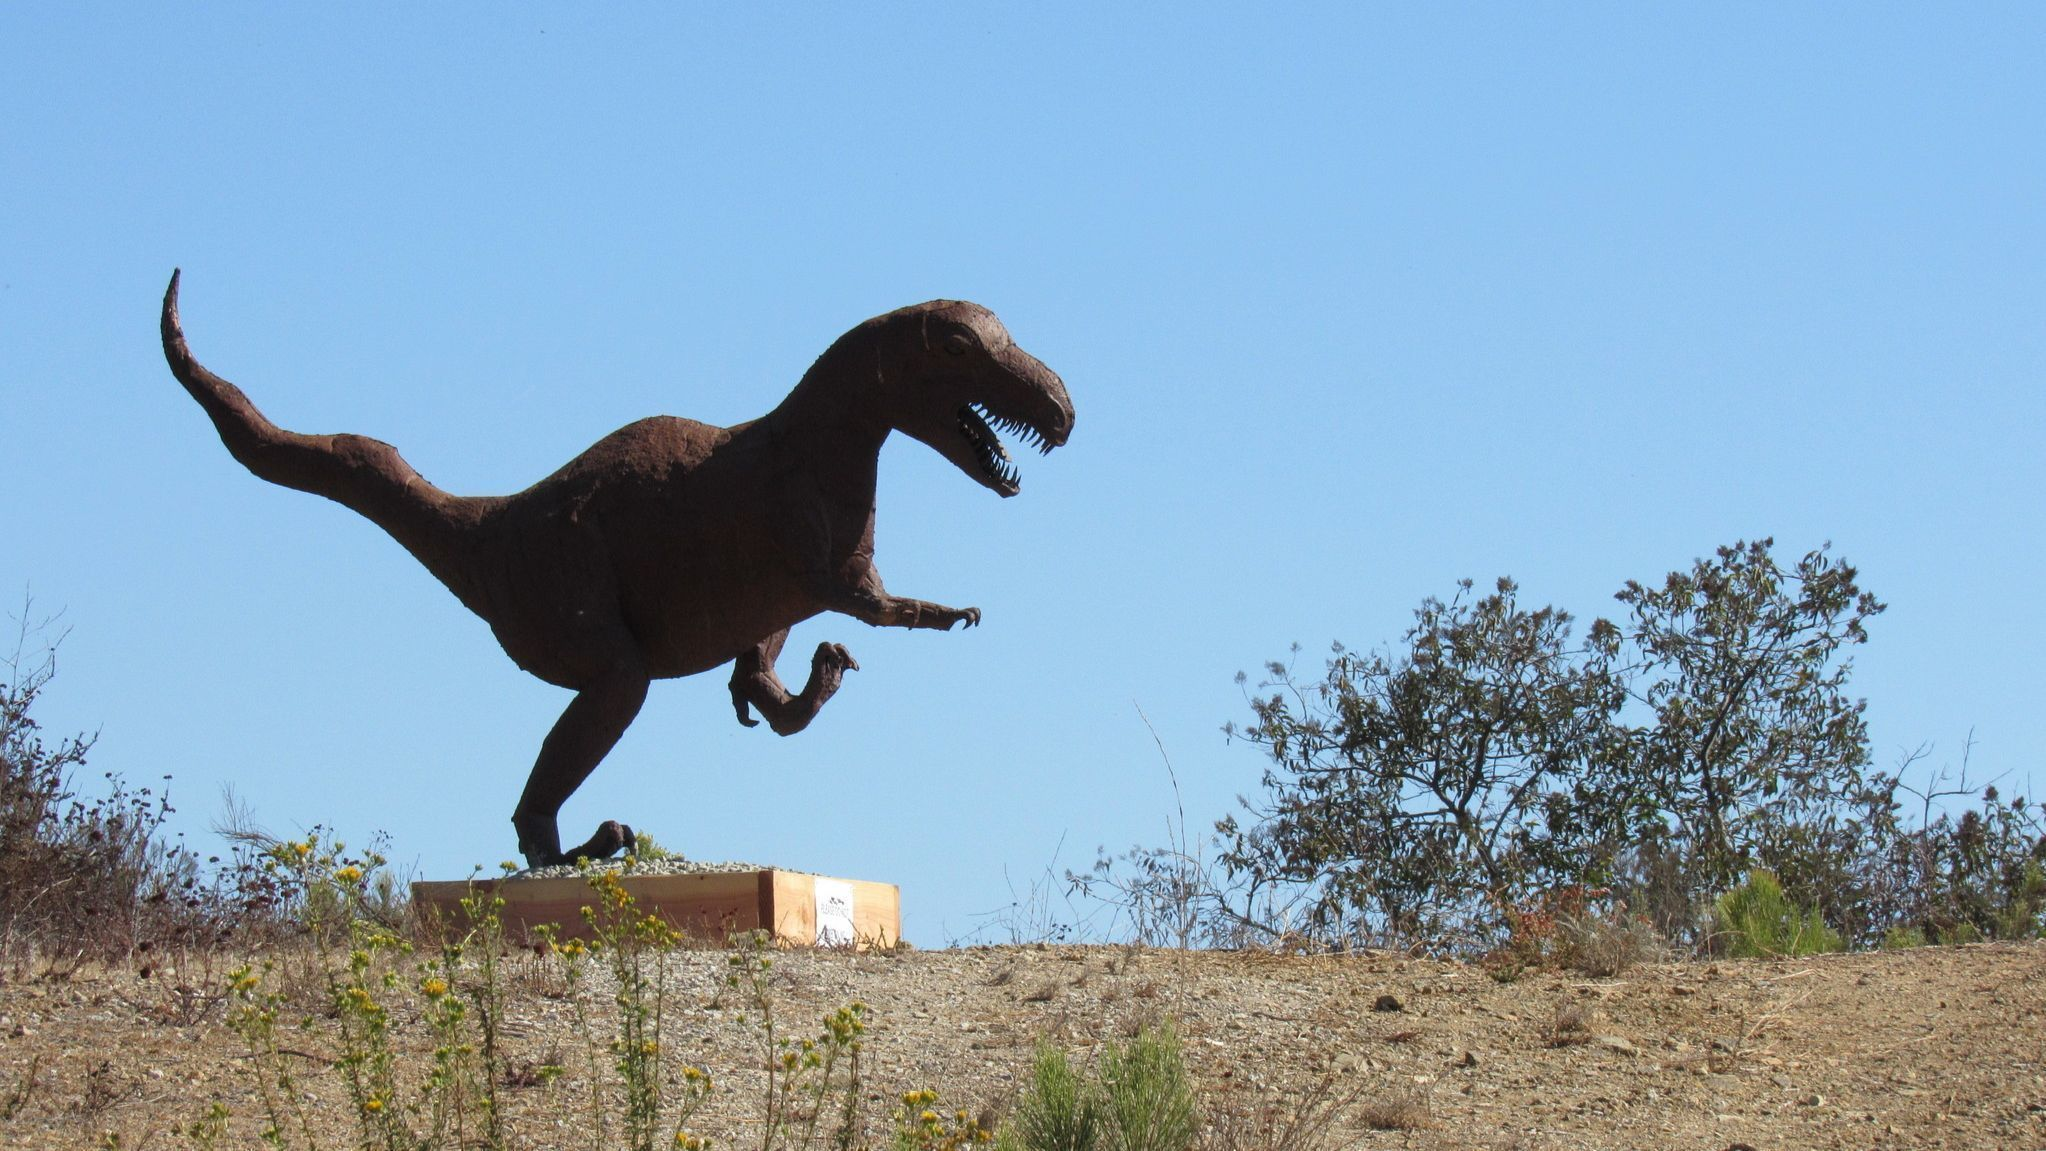 where did that t rex come from in la mesa the san diego union tribune